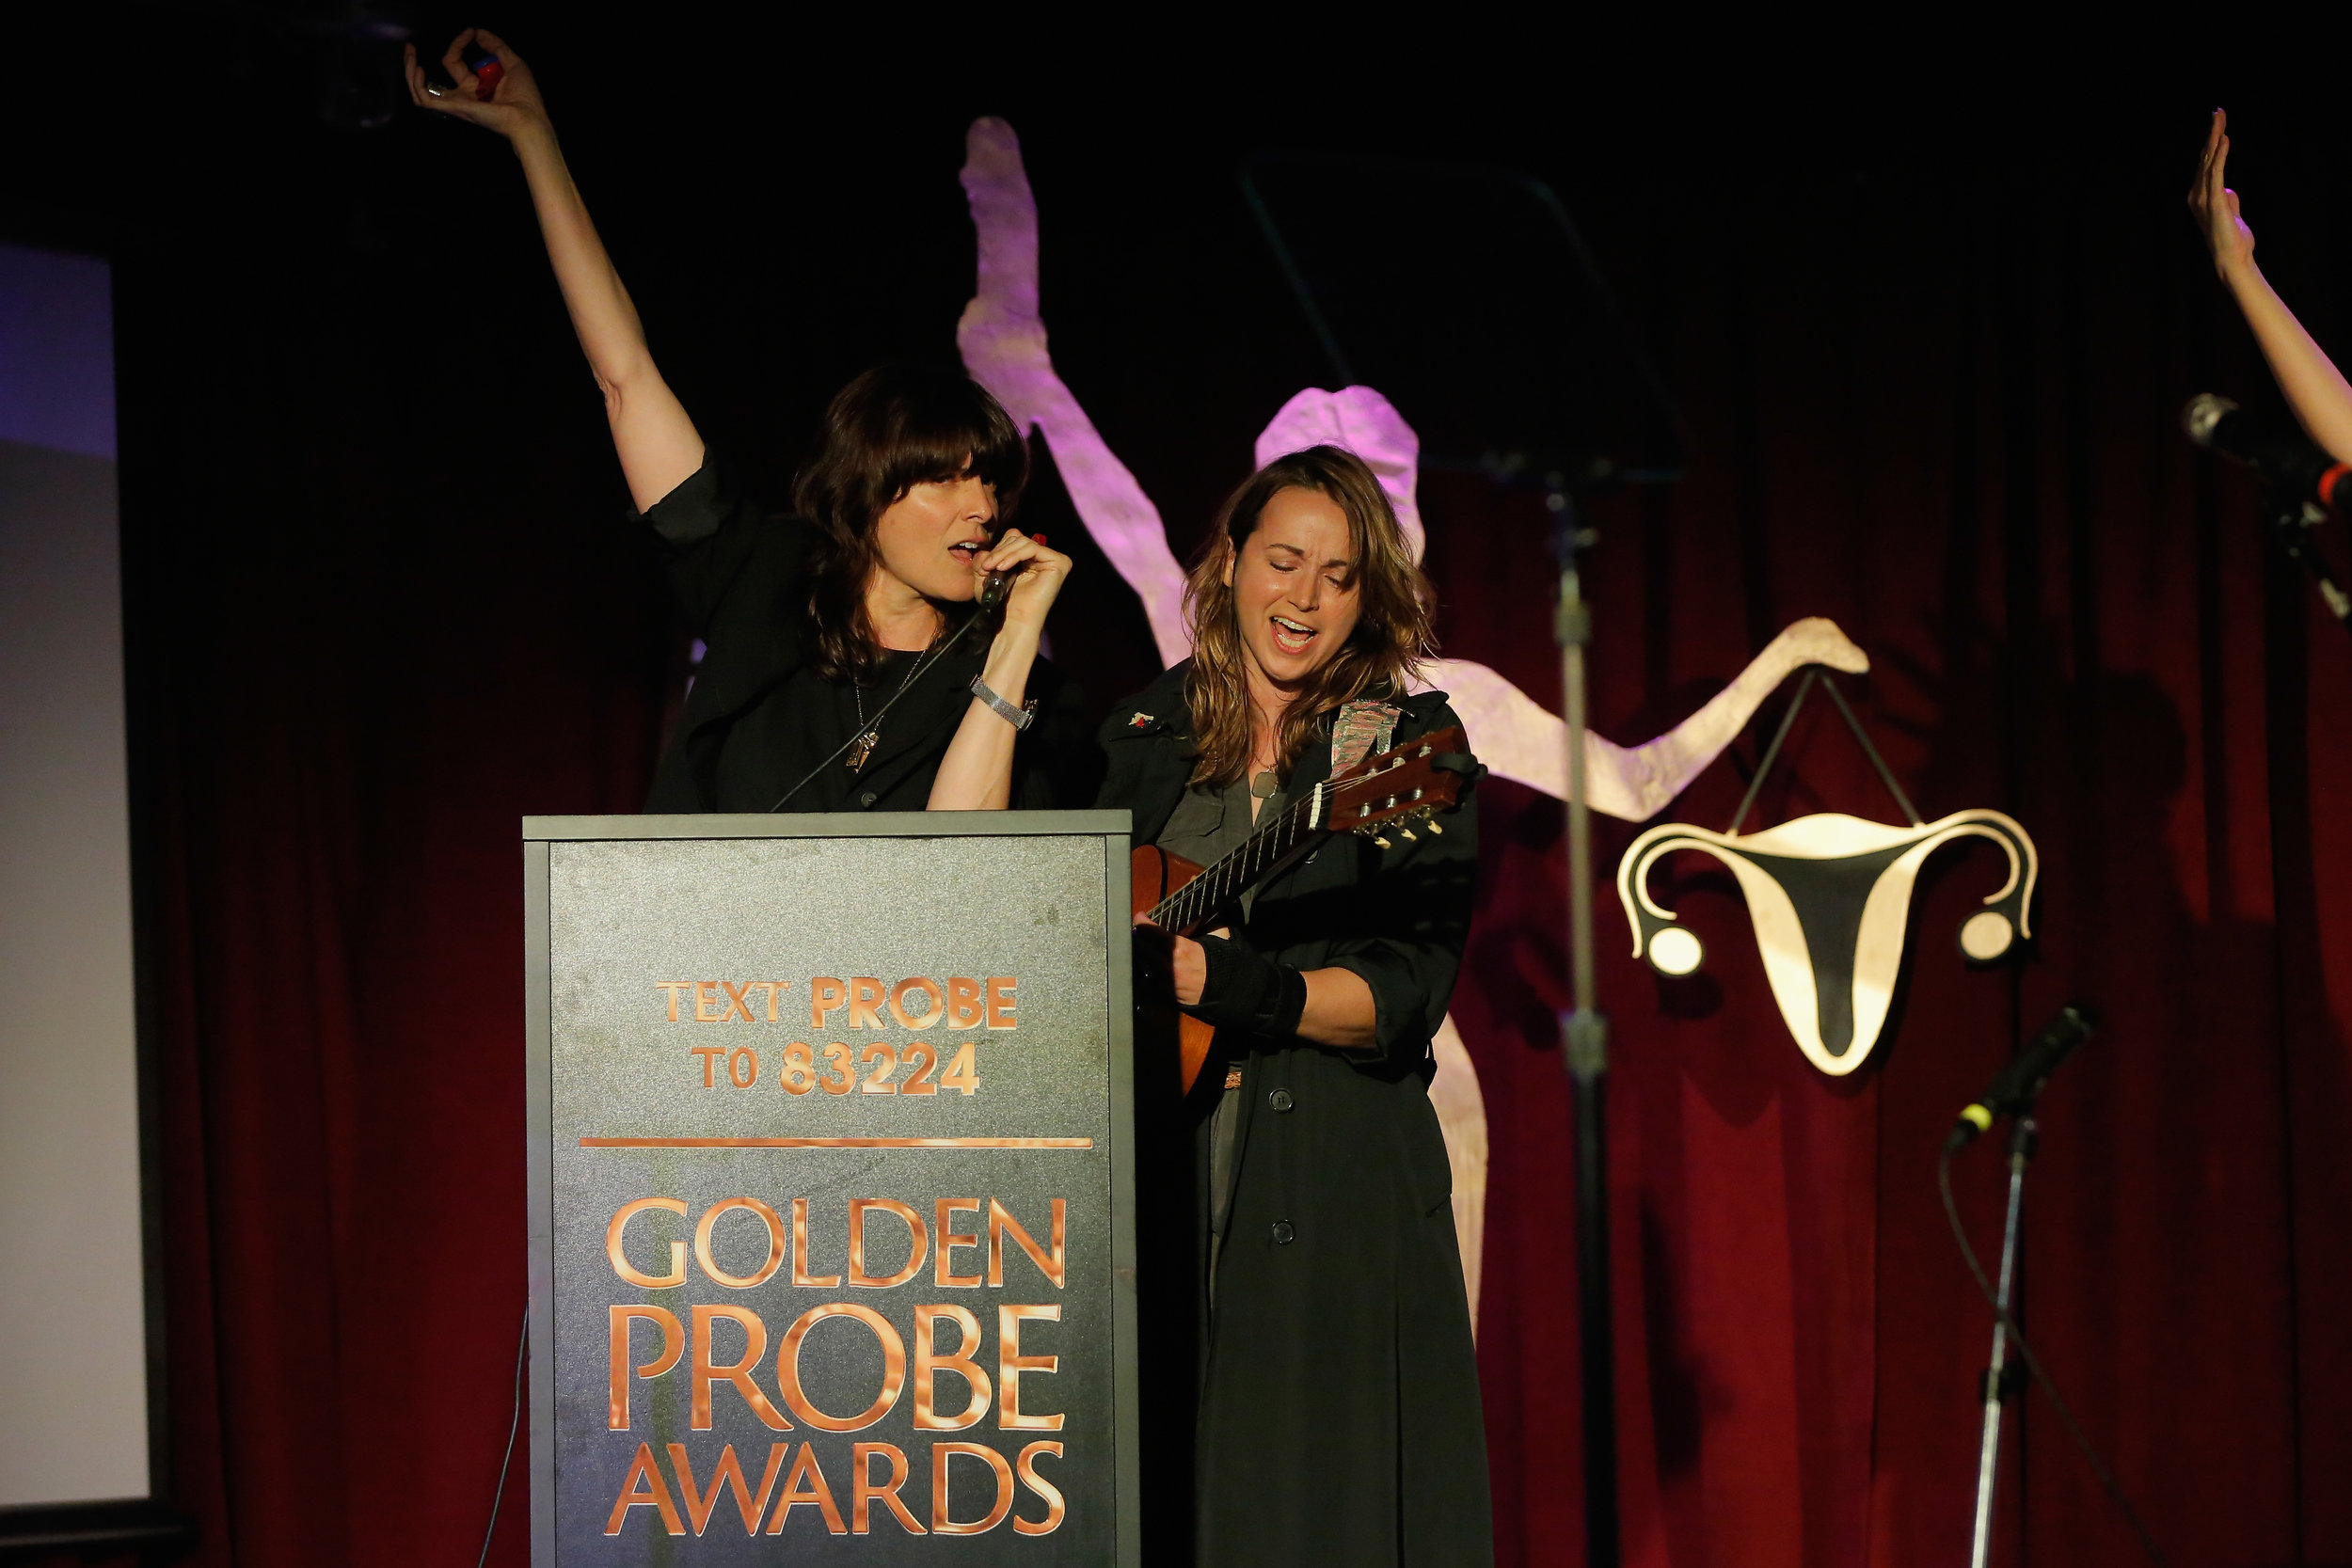 Ambrosia Parsley and Holly Miranda (Photo by Astrid Stawiarz/Getty Images for Lady Parts Justice)